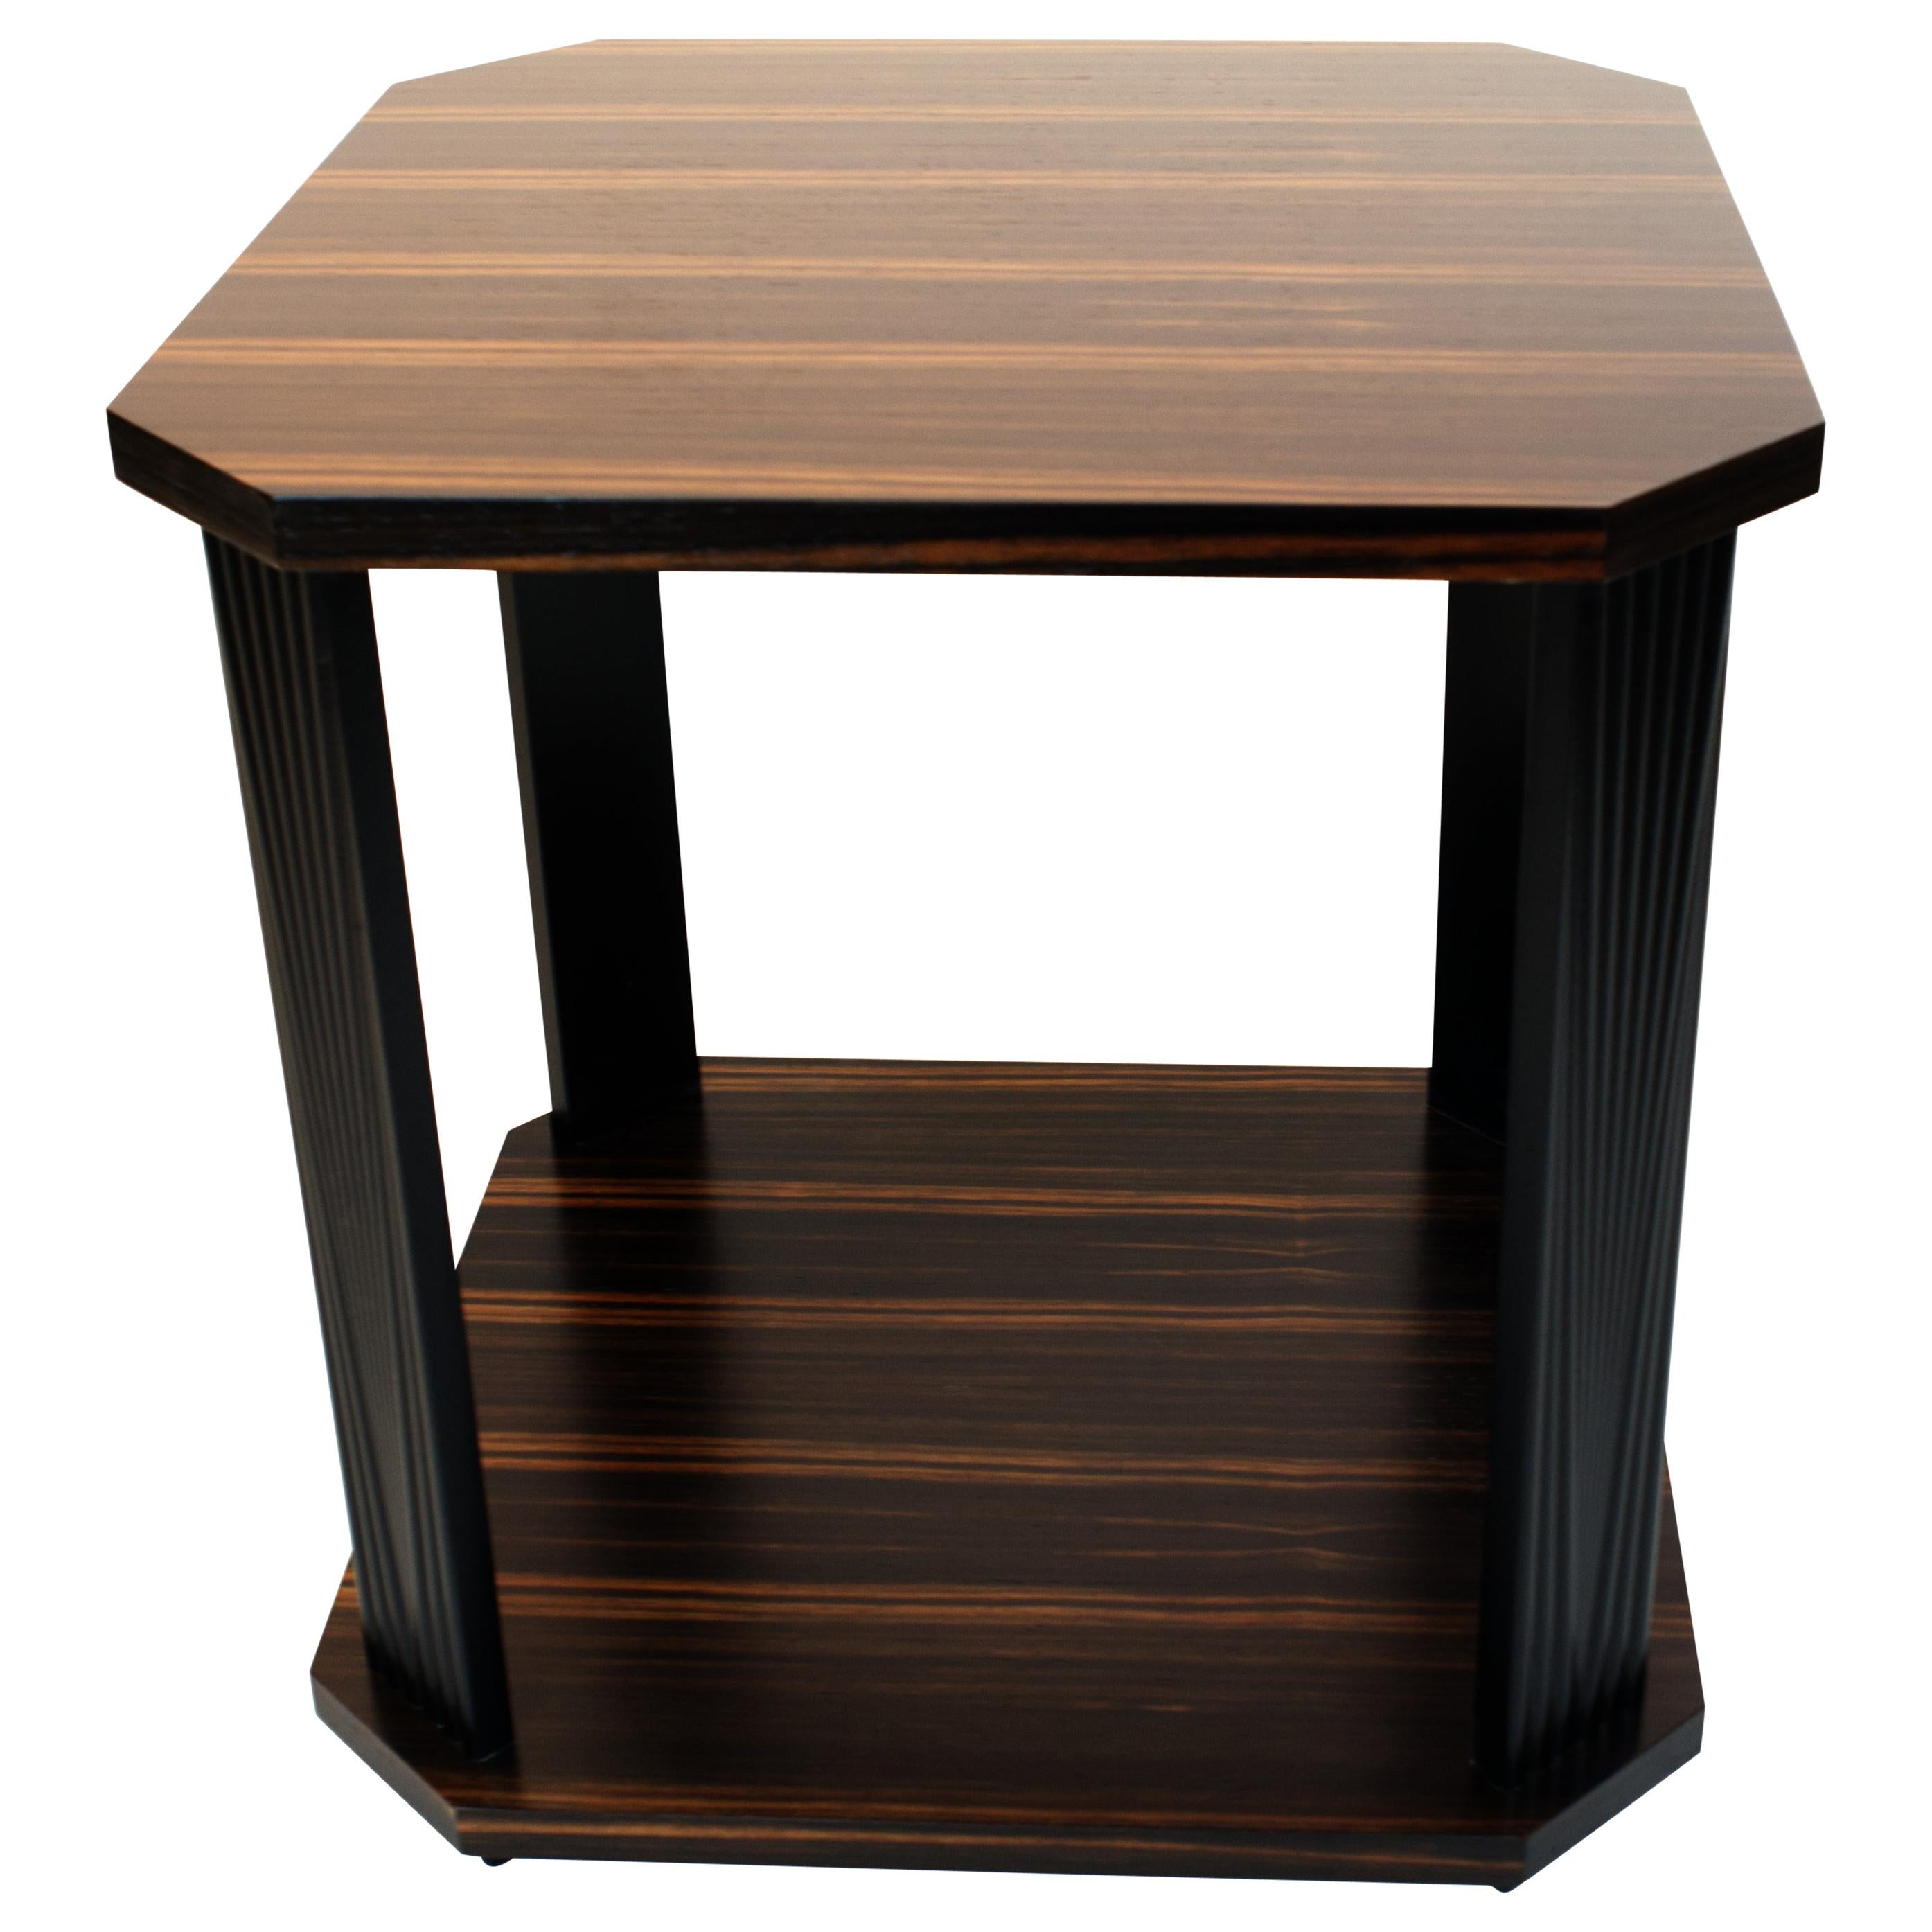 Modernist series Square side table in ebony macassar